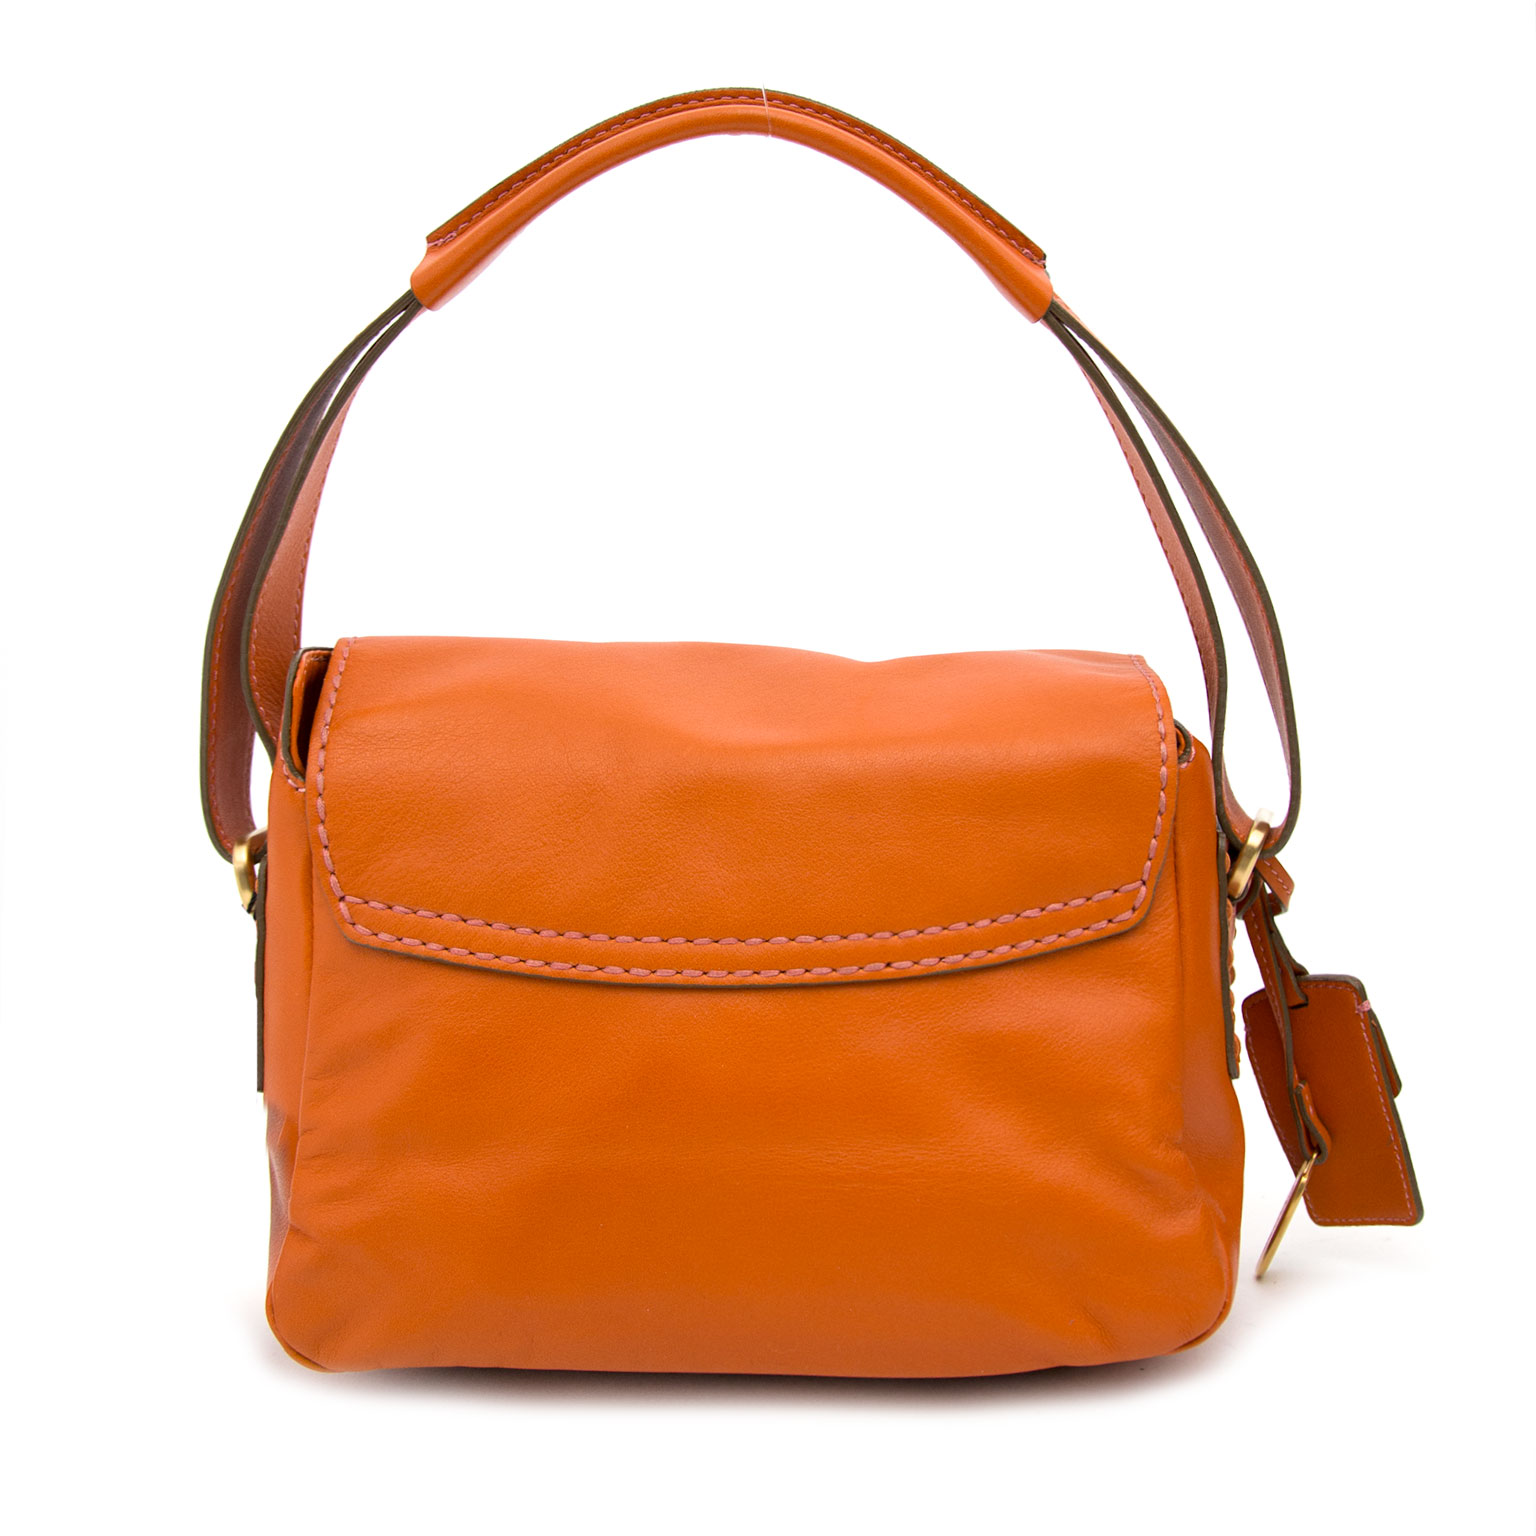 b04bab0f1c ... Shop Tod's Orange Shoulder bag at the right price at Labellov.com